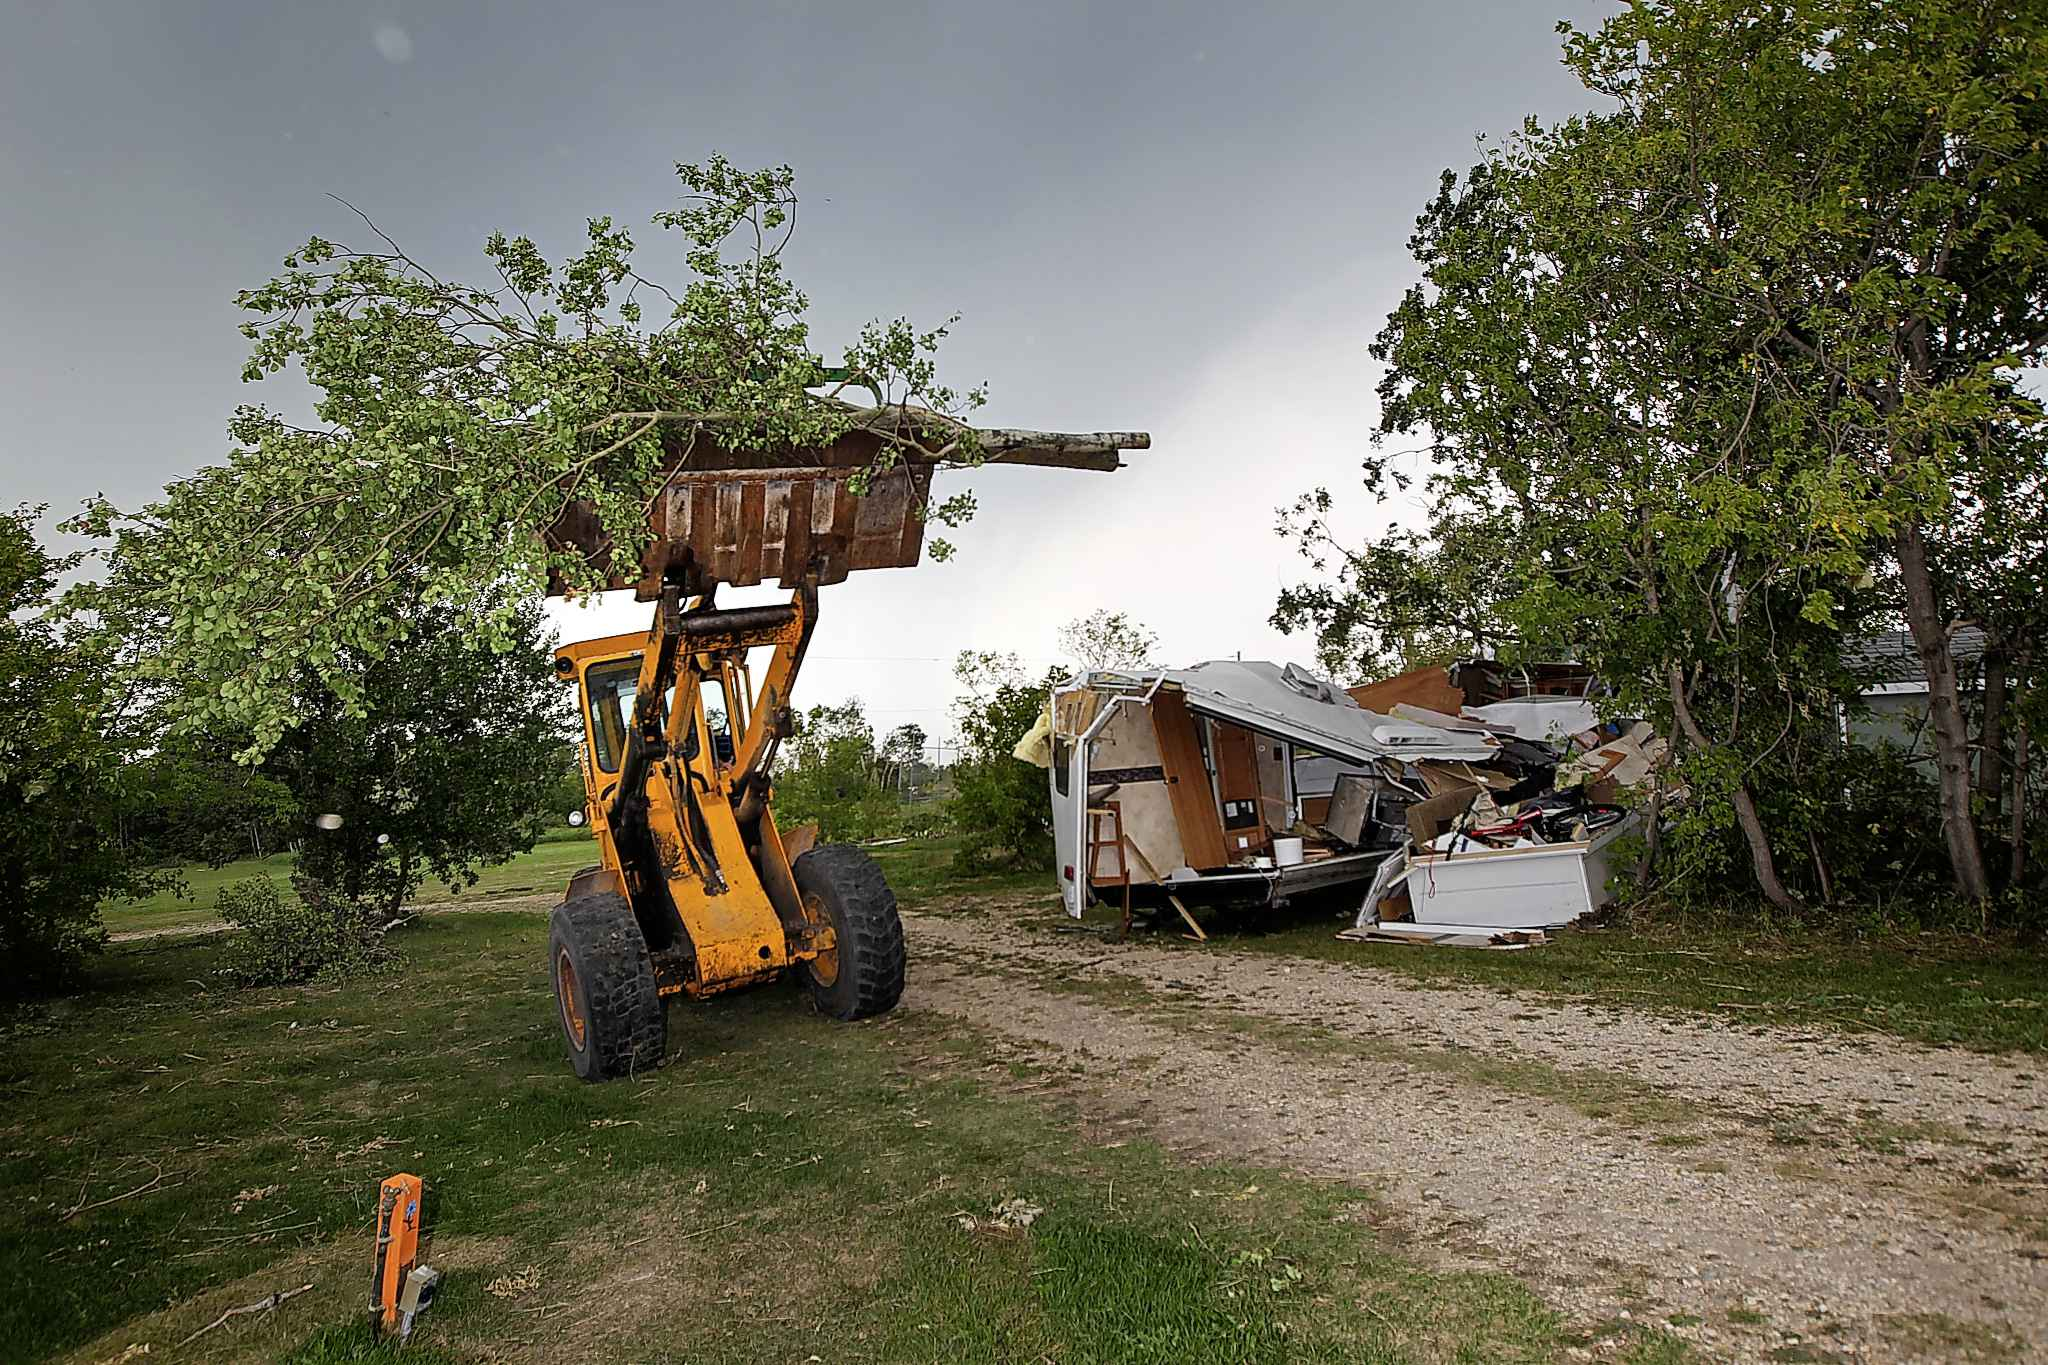 Jimmy Bruce uses a loader to clear debris from the Margaret Bruce Beach and campground.